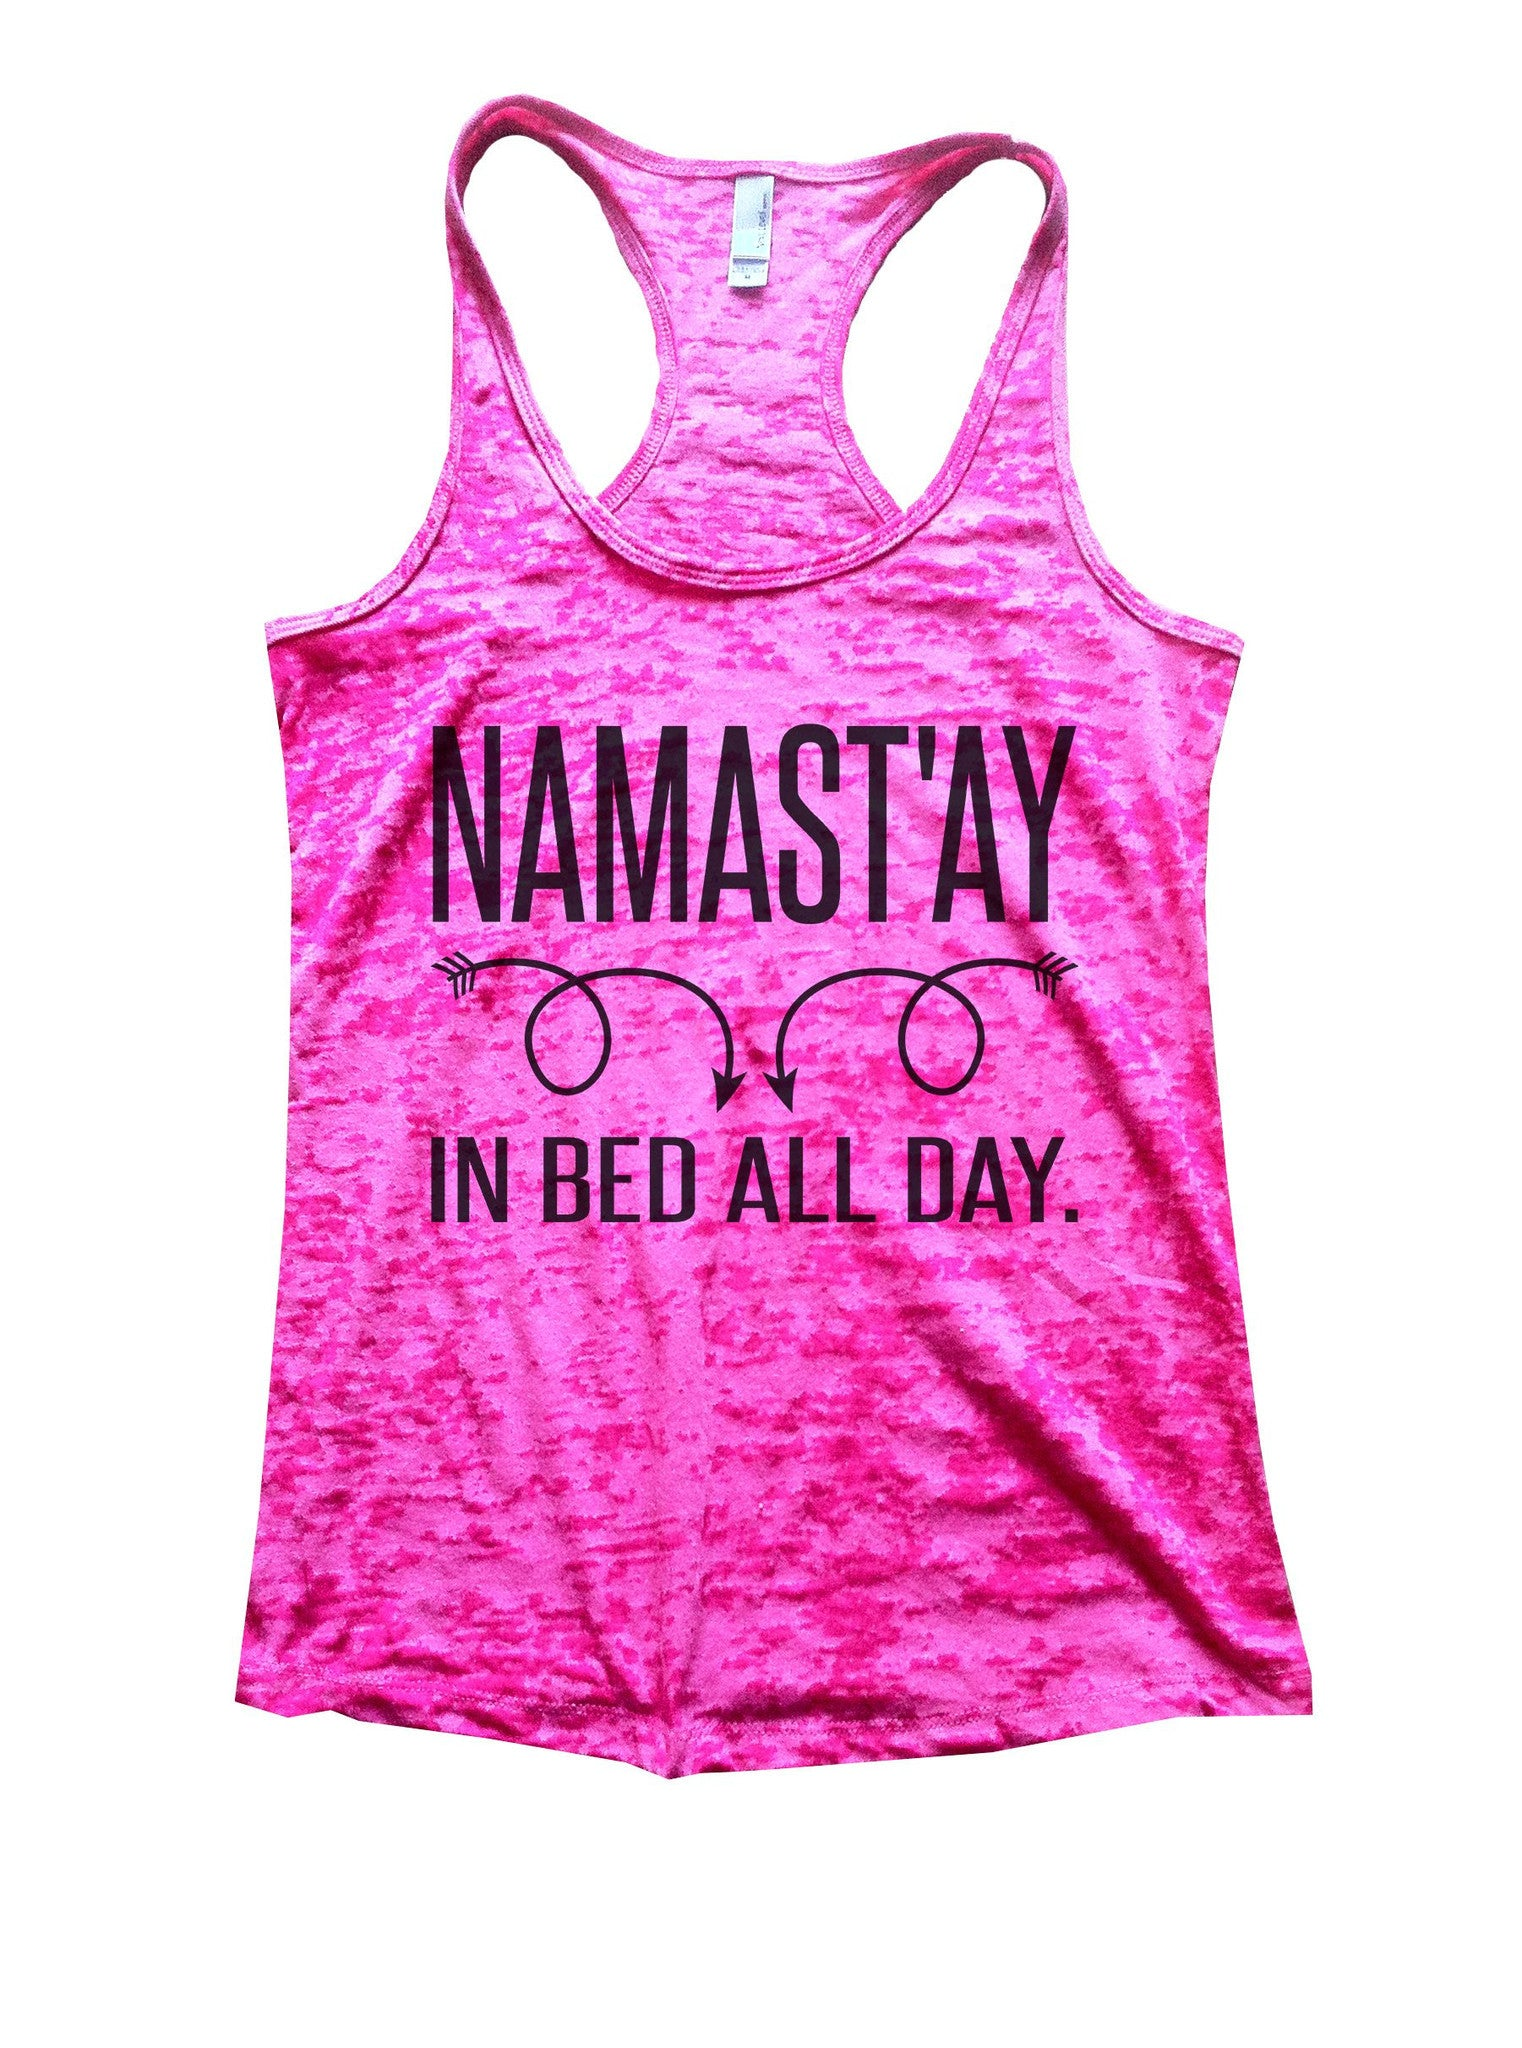 Namastay In Bed All Day Burnout Tank Top By Funny Treadz - 919 - Funny Shirts Tank Tops Burnouts and Triblends  - 7